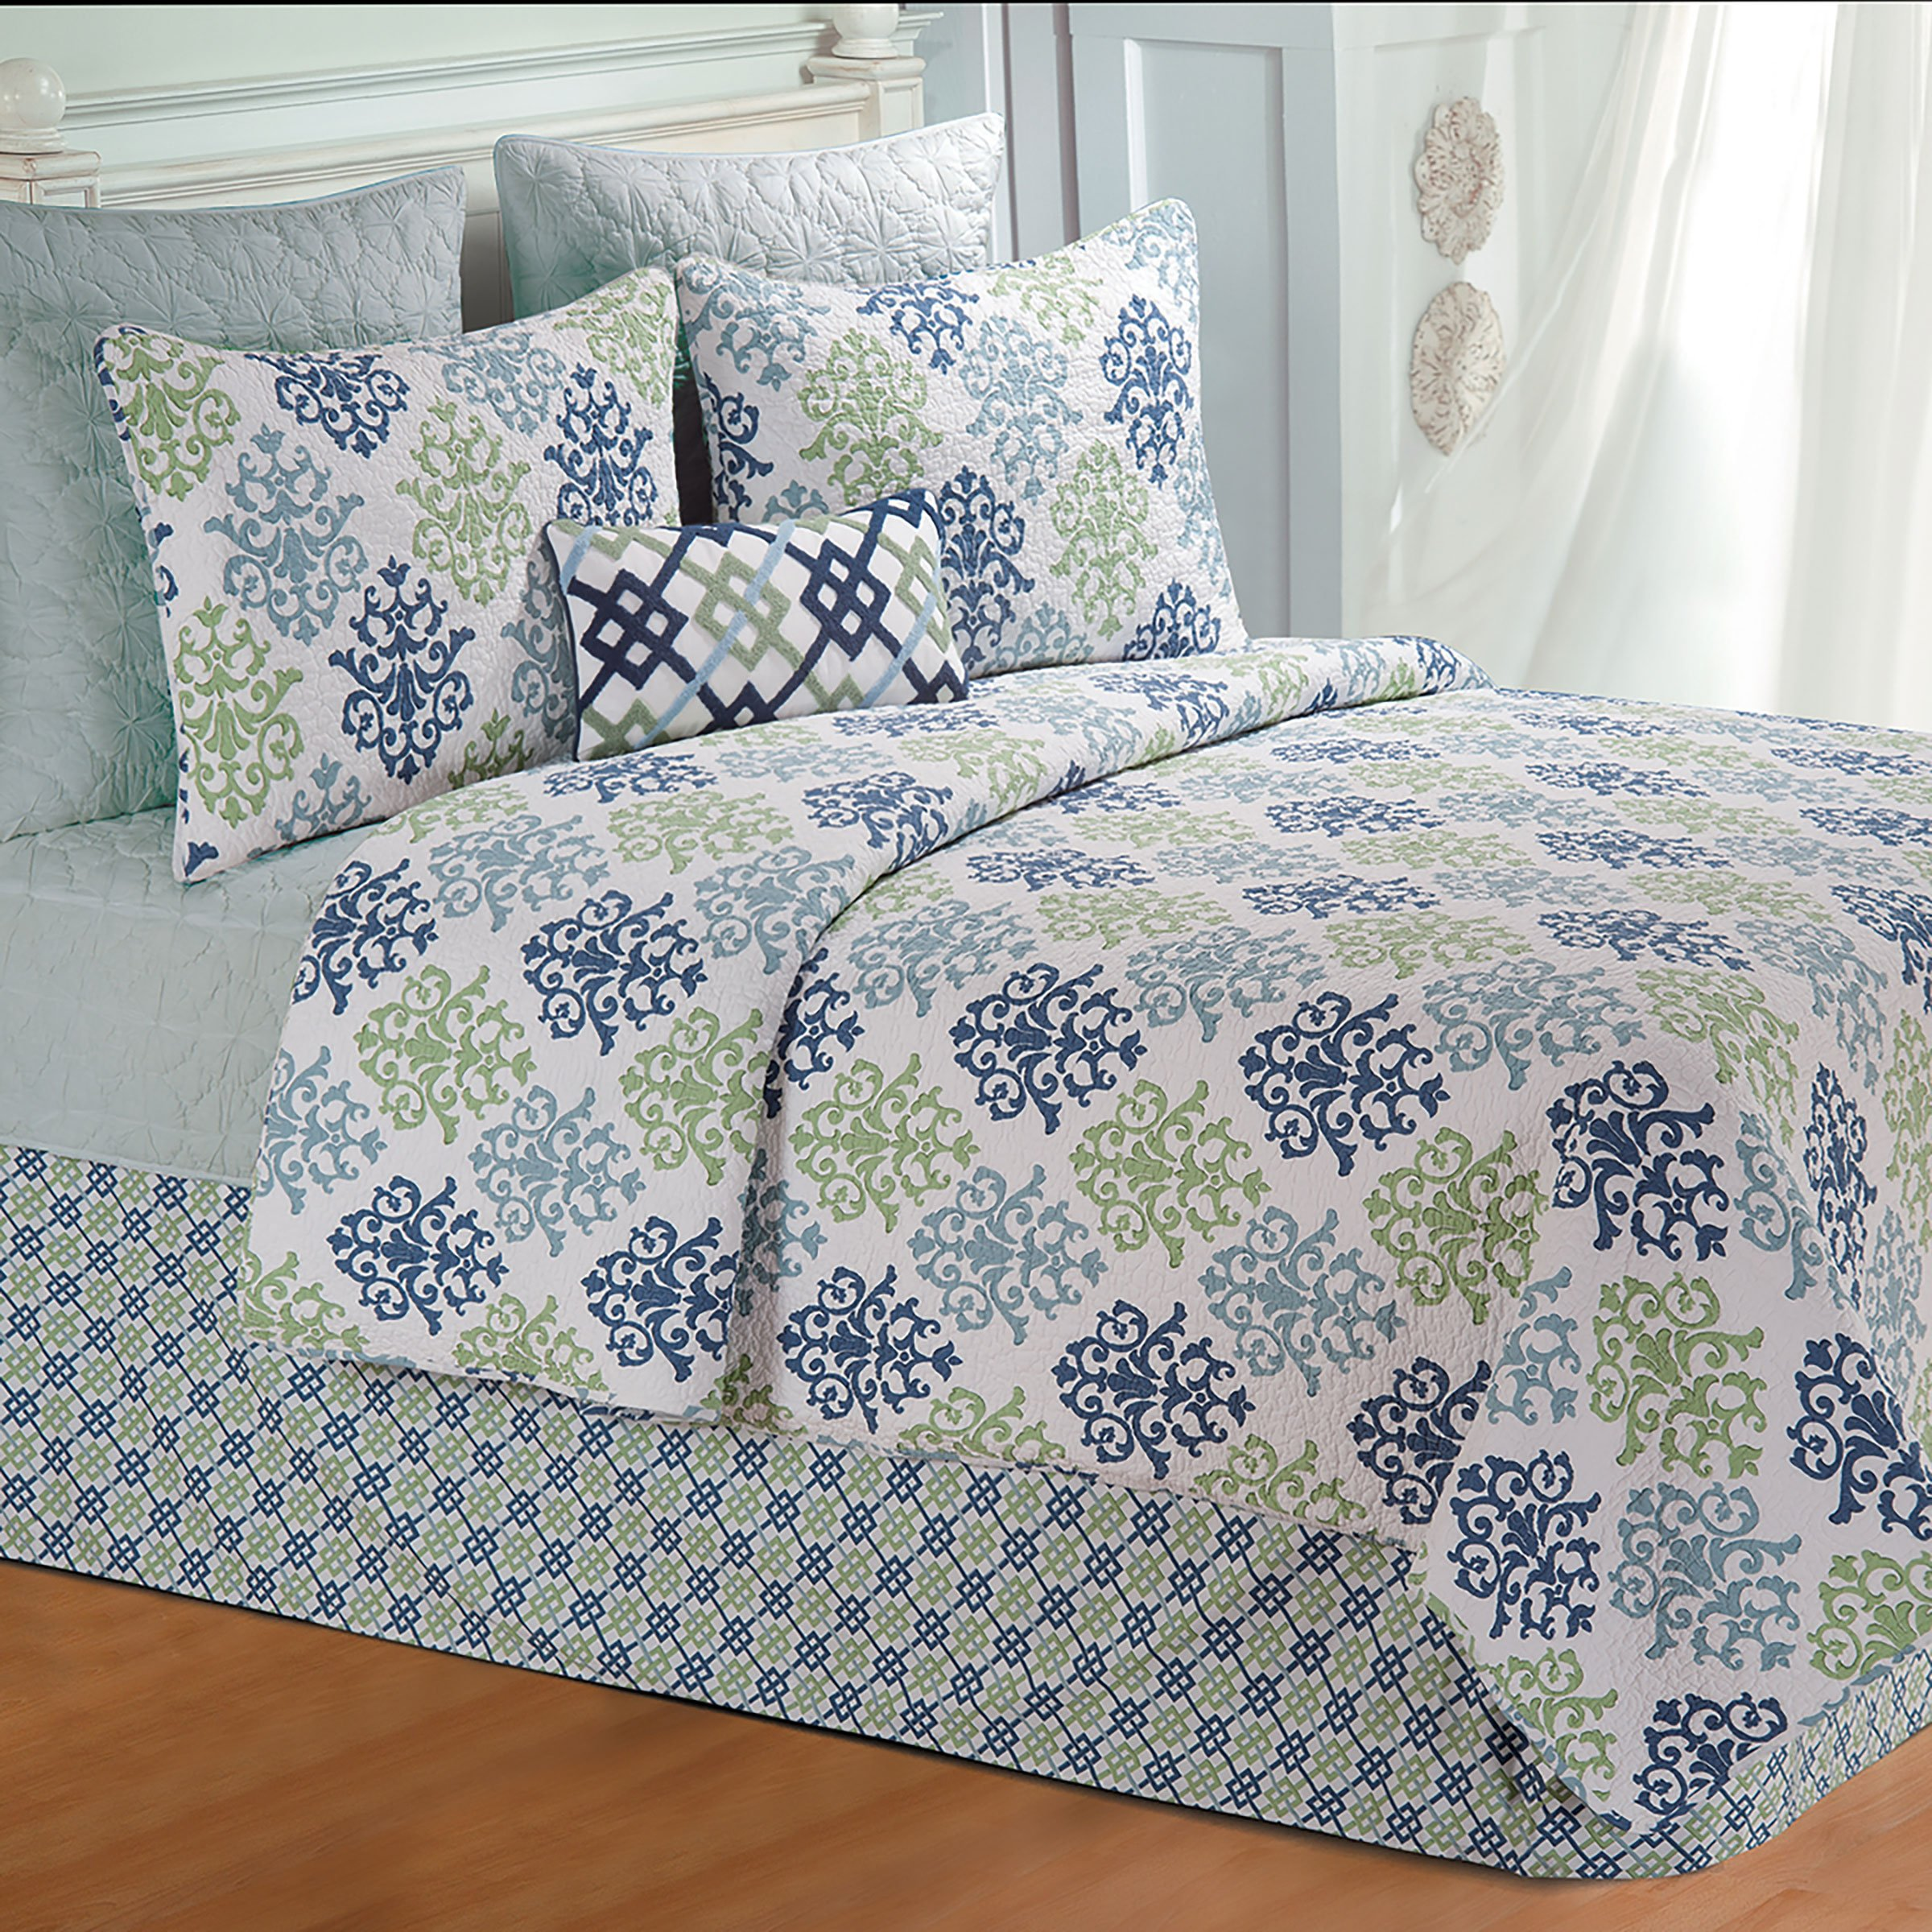 90'' x 92'' Full/Queen Quilt, Shabby Chic Blue by C&F Home